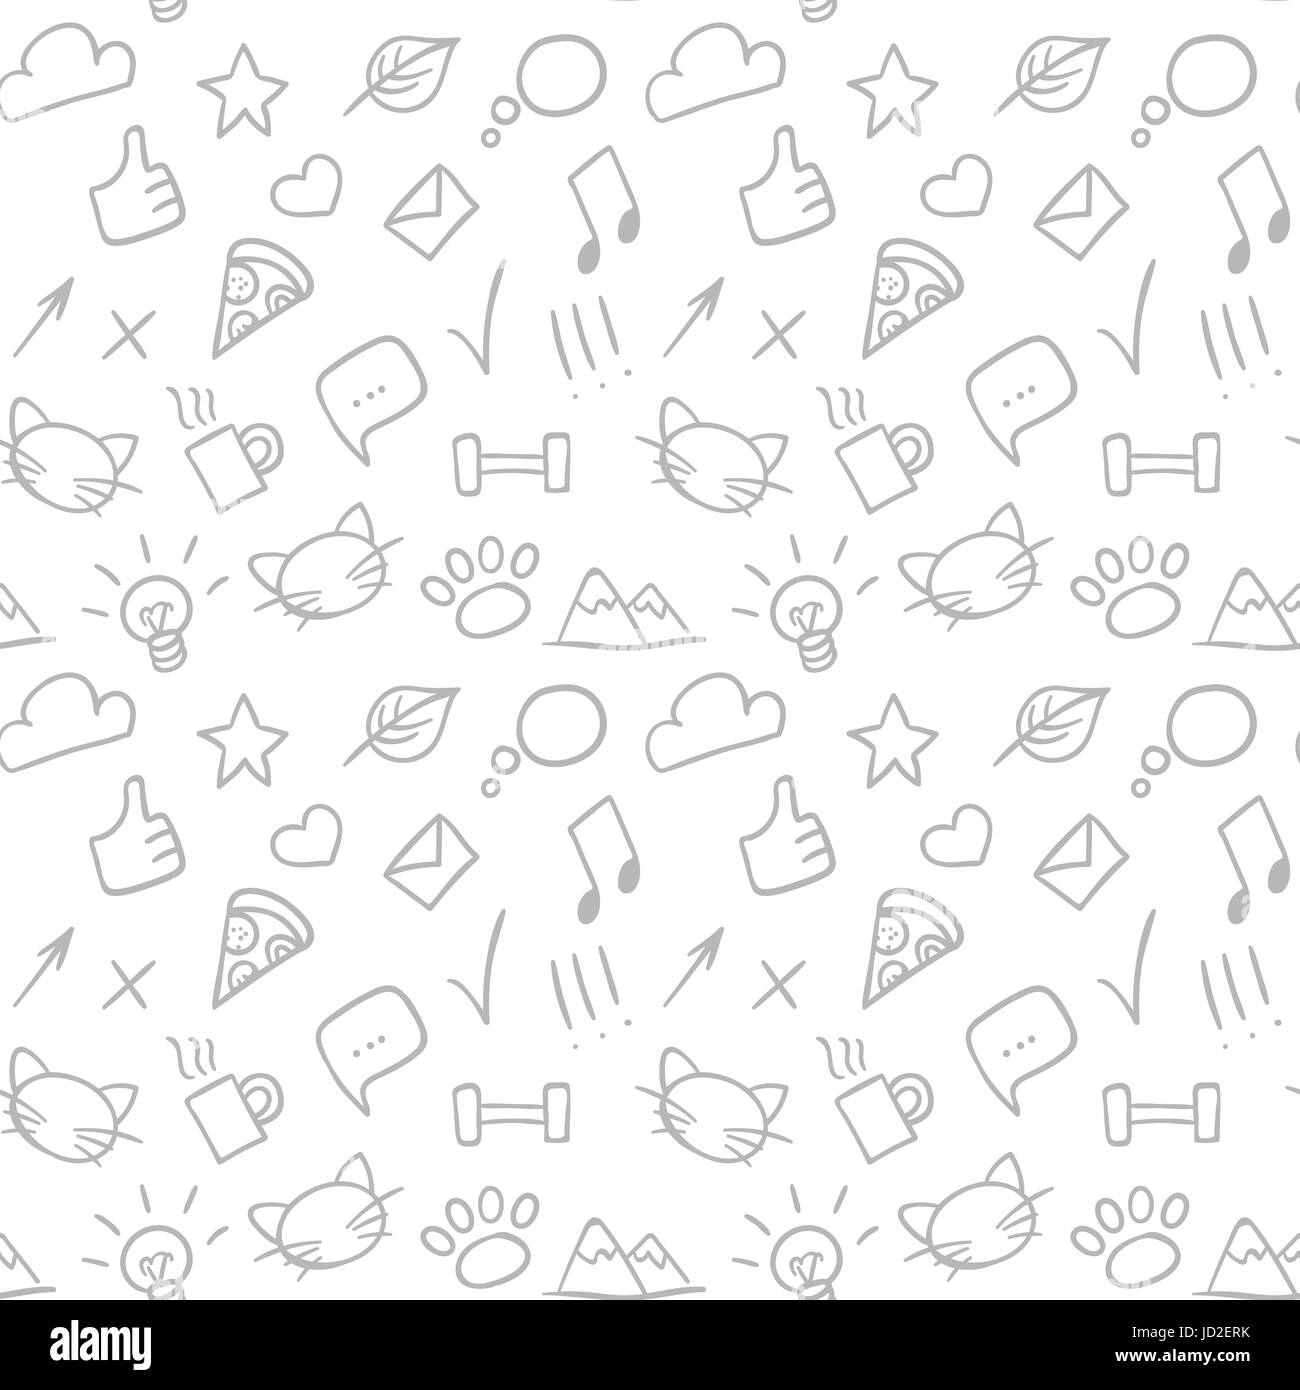 Vector seamless doodle hand drawn pattern with social icons Stock